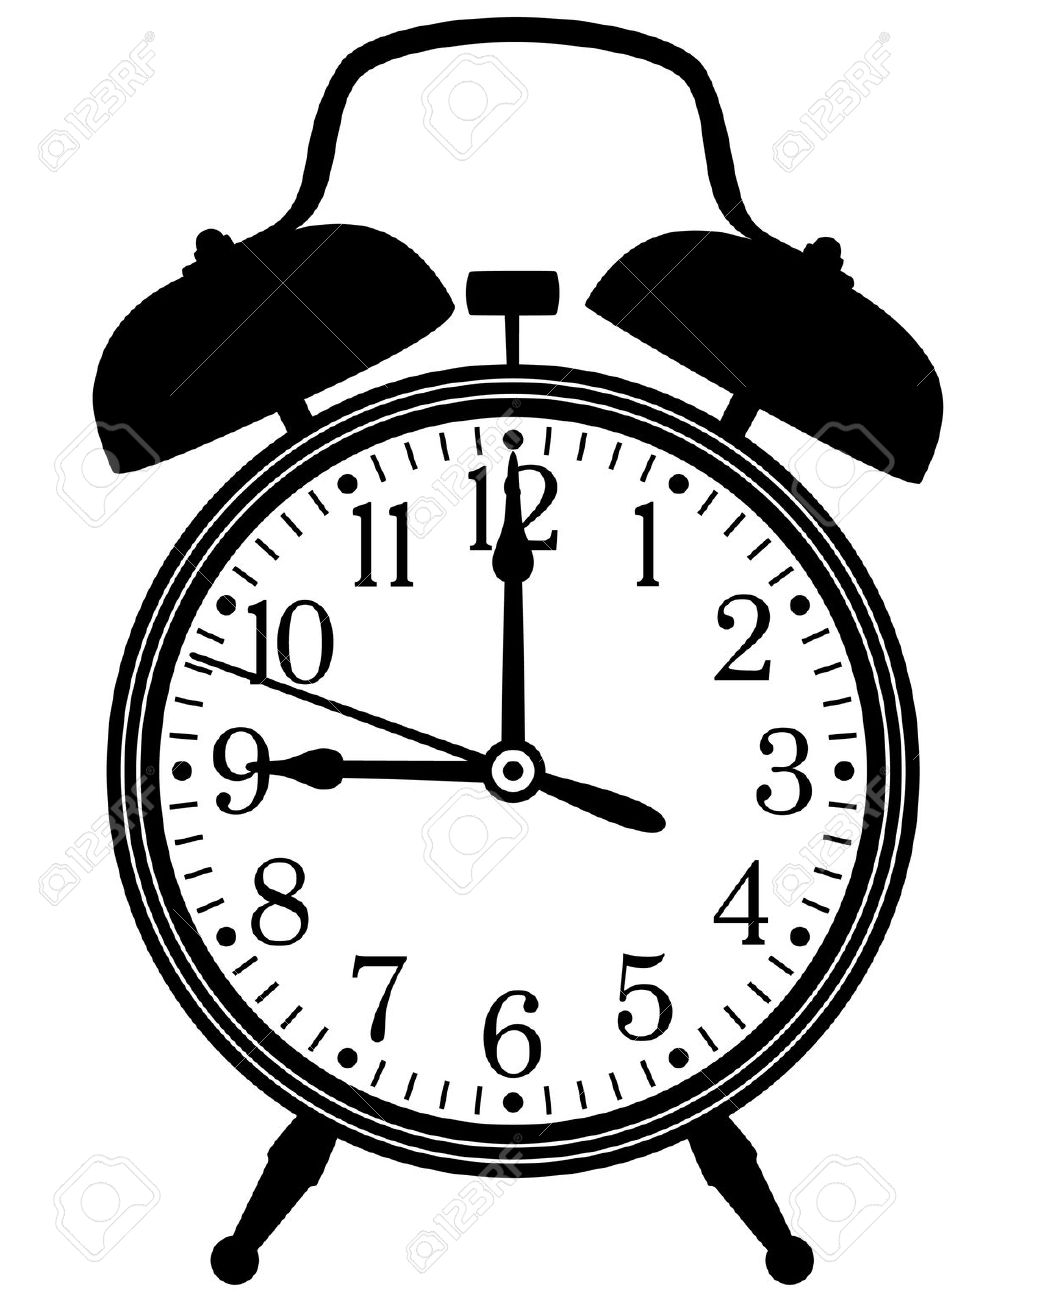 Black And White Alarm Clock Clipart.